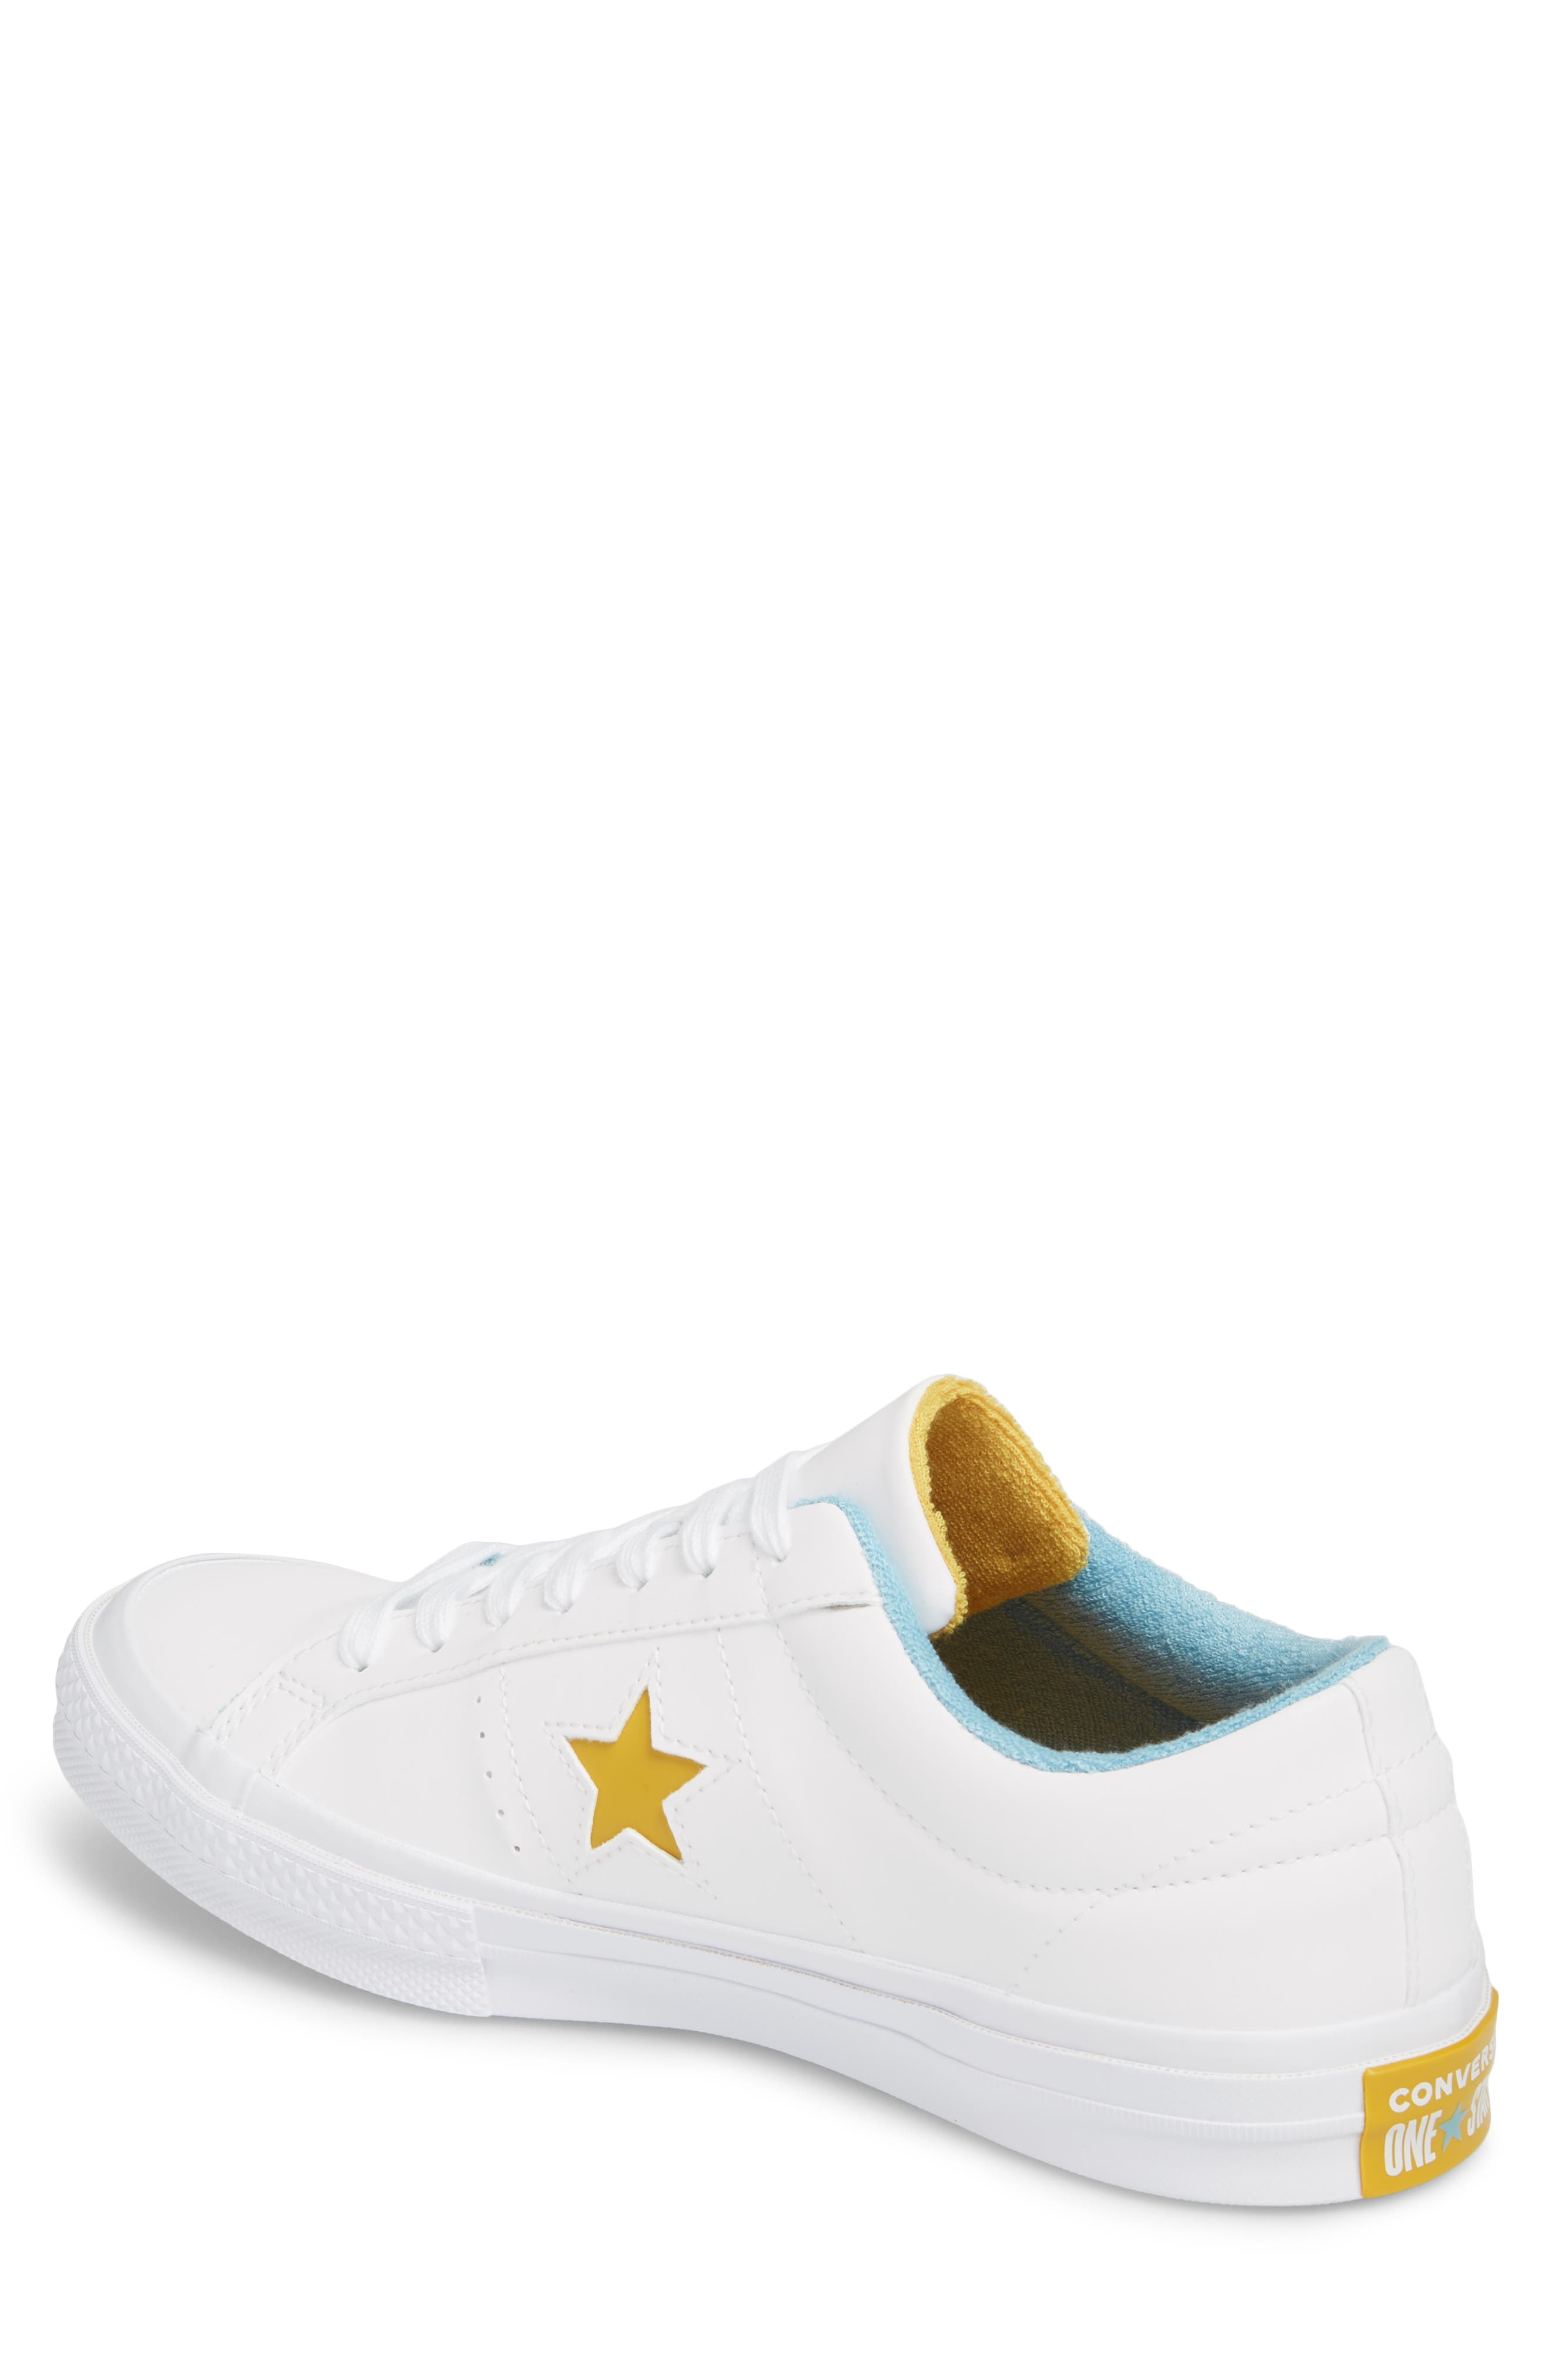 Chuck Taylor<sup>®</sup> One Star Grand Slam Sneaker,                             Alternate thumbnail 4, color,